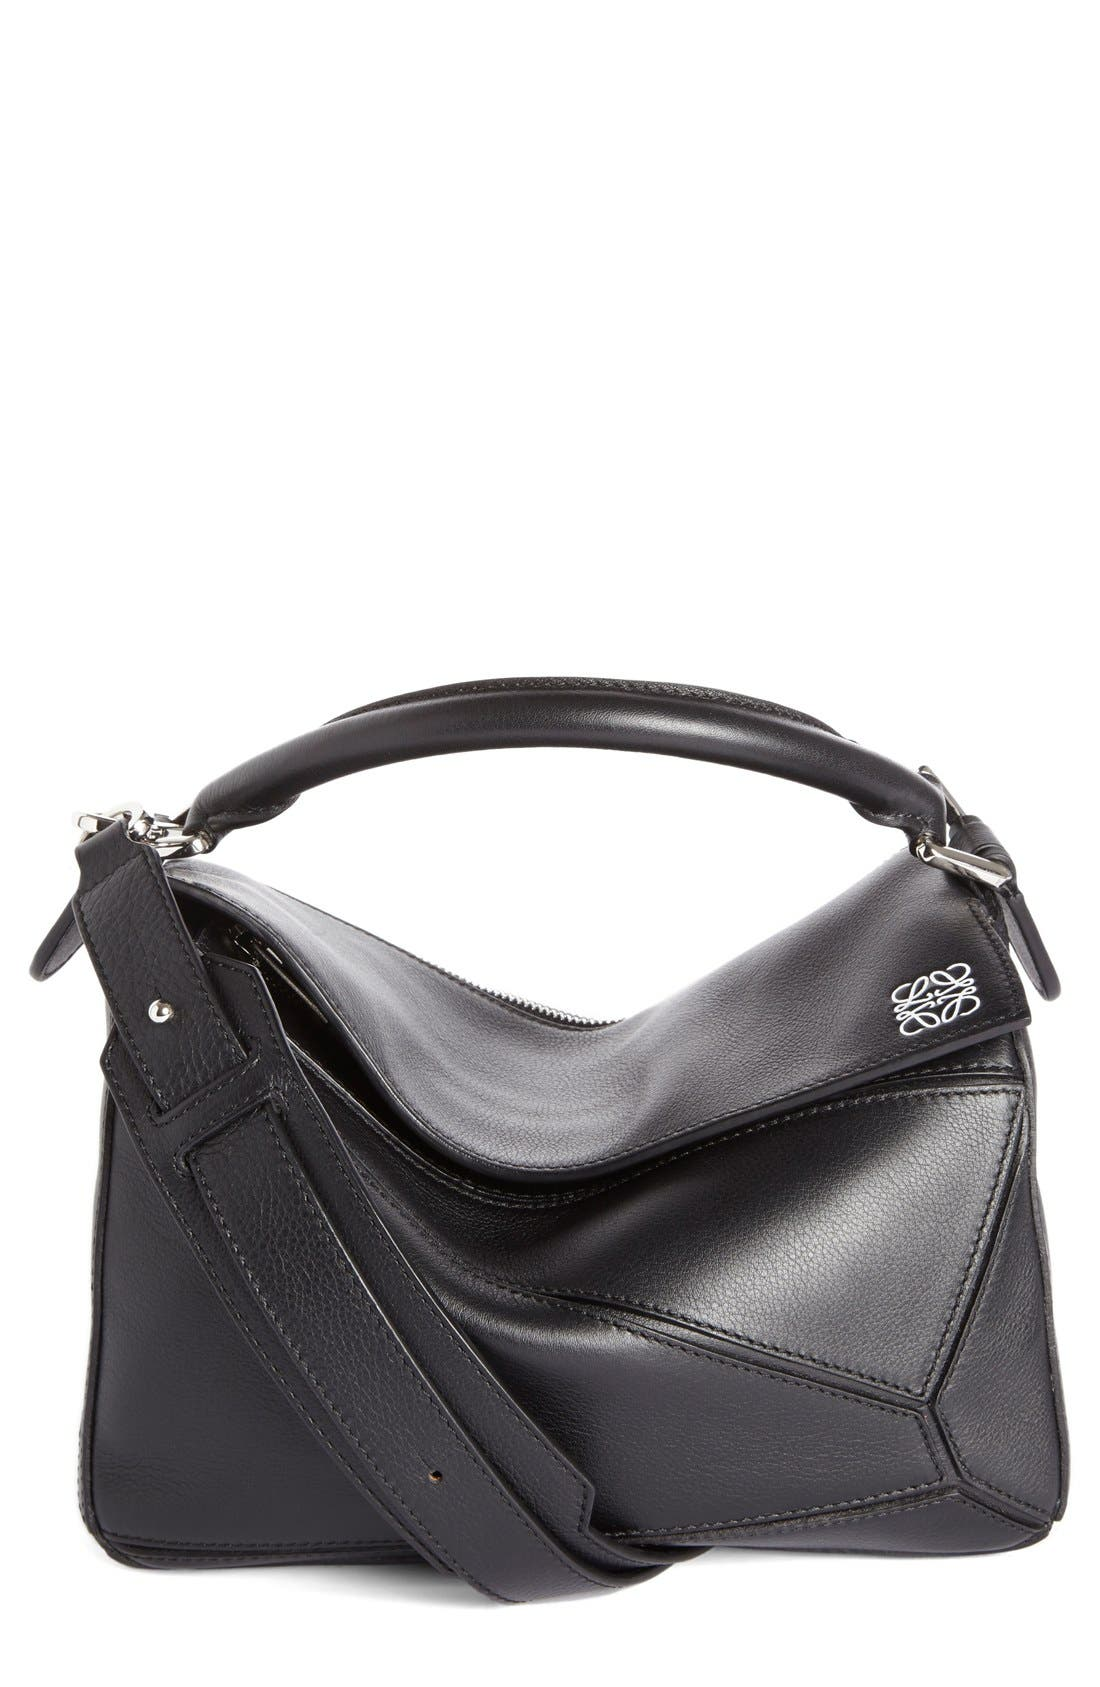 'Small Puzzle' Calfskin Leather Bag,                             Main thumbnail 1, color,                             Black